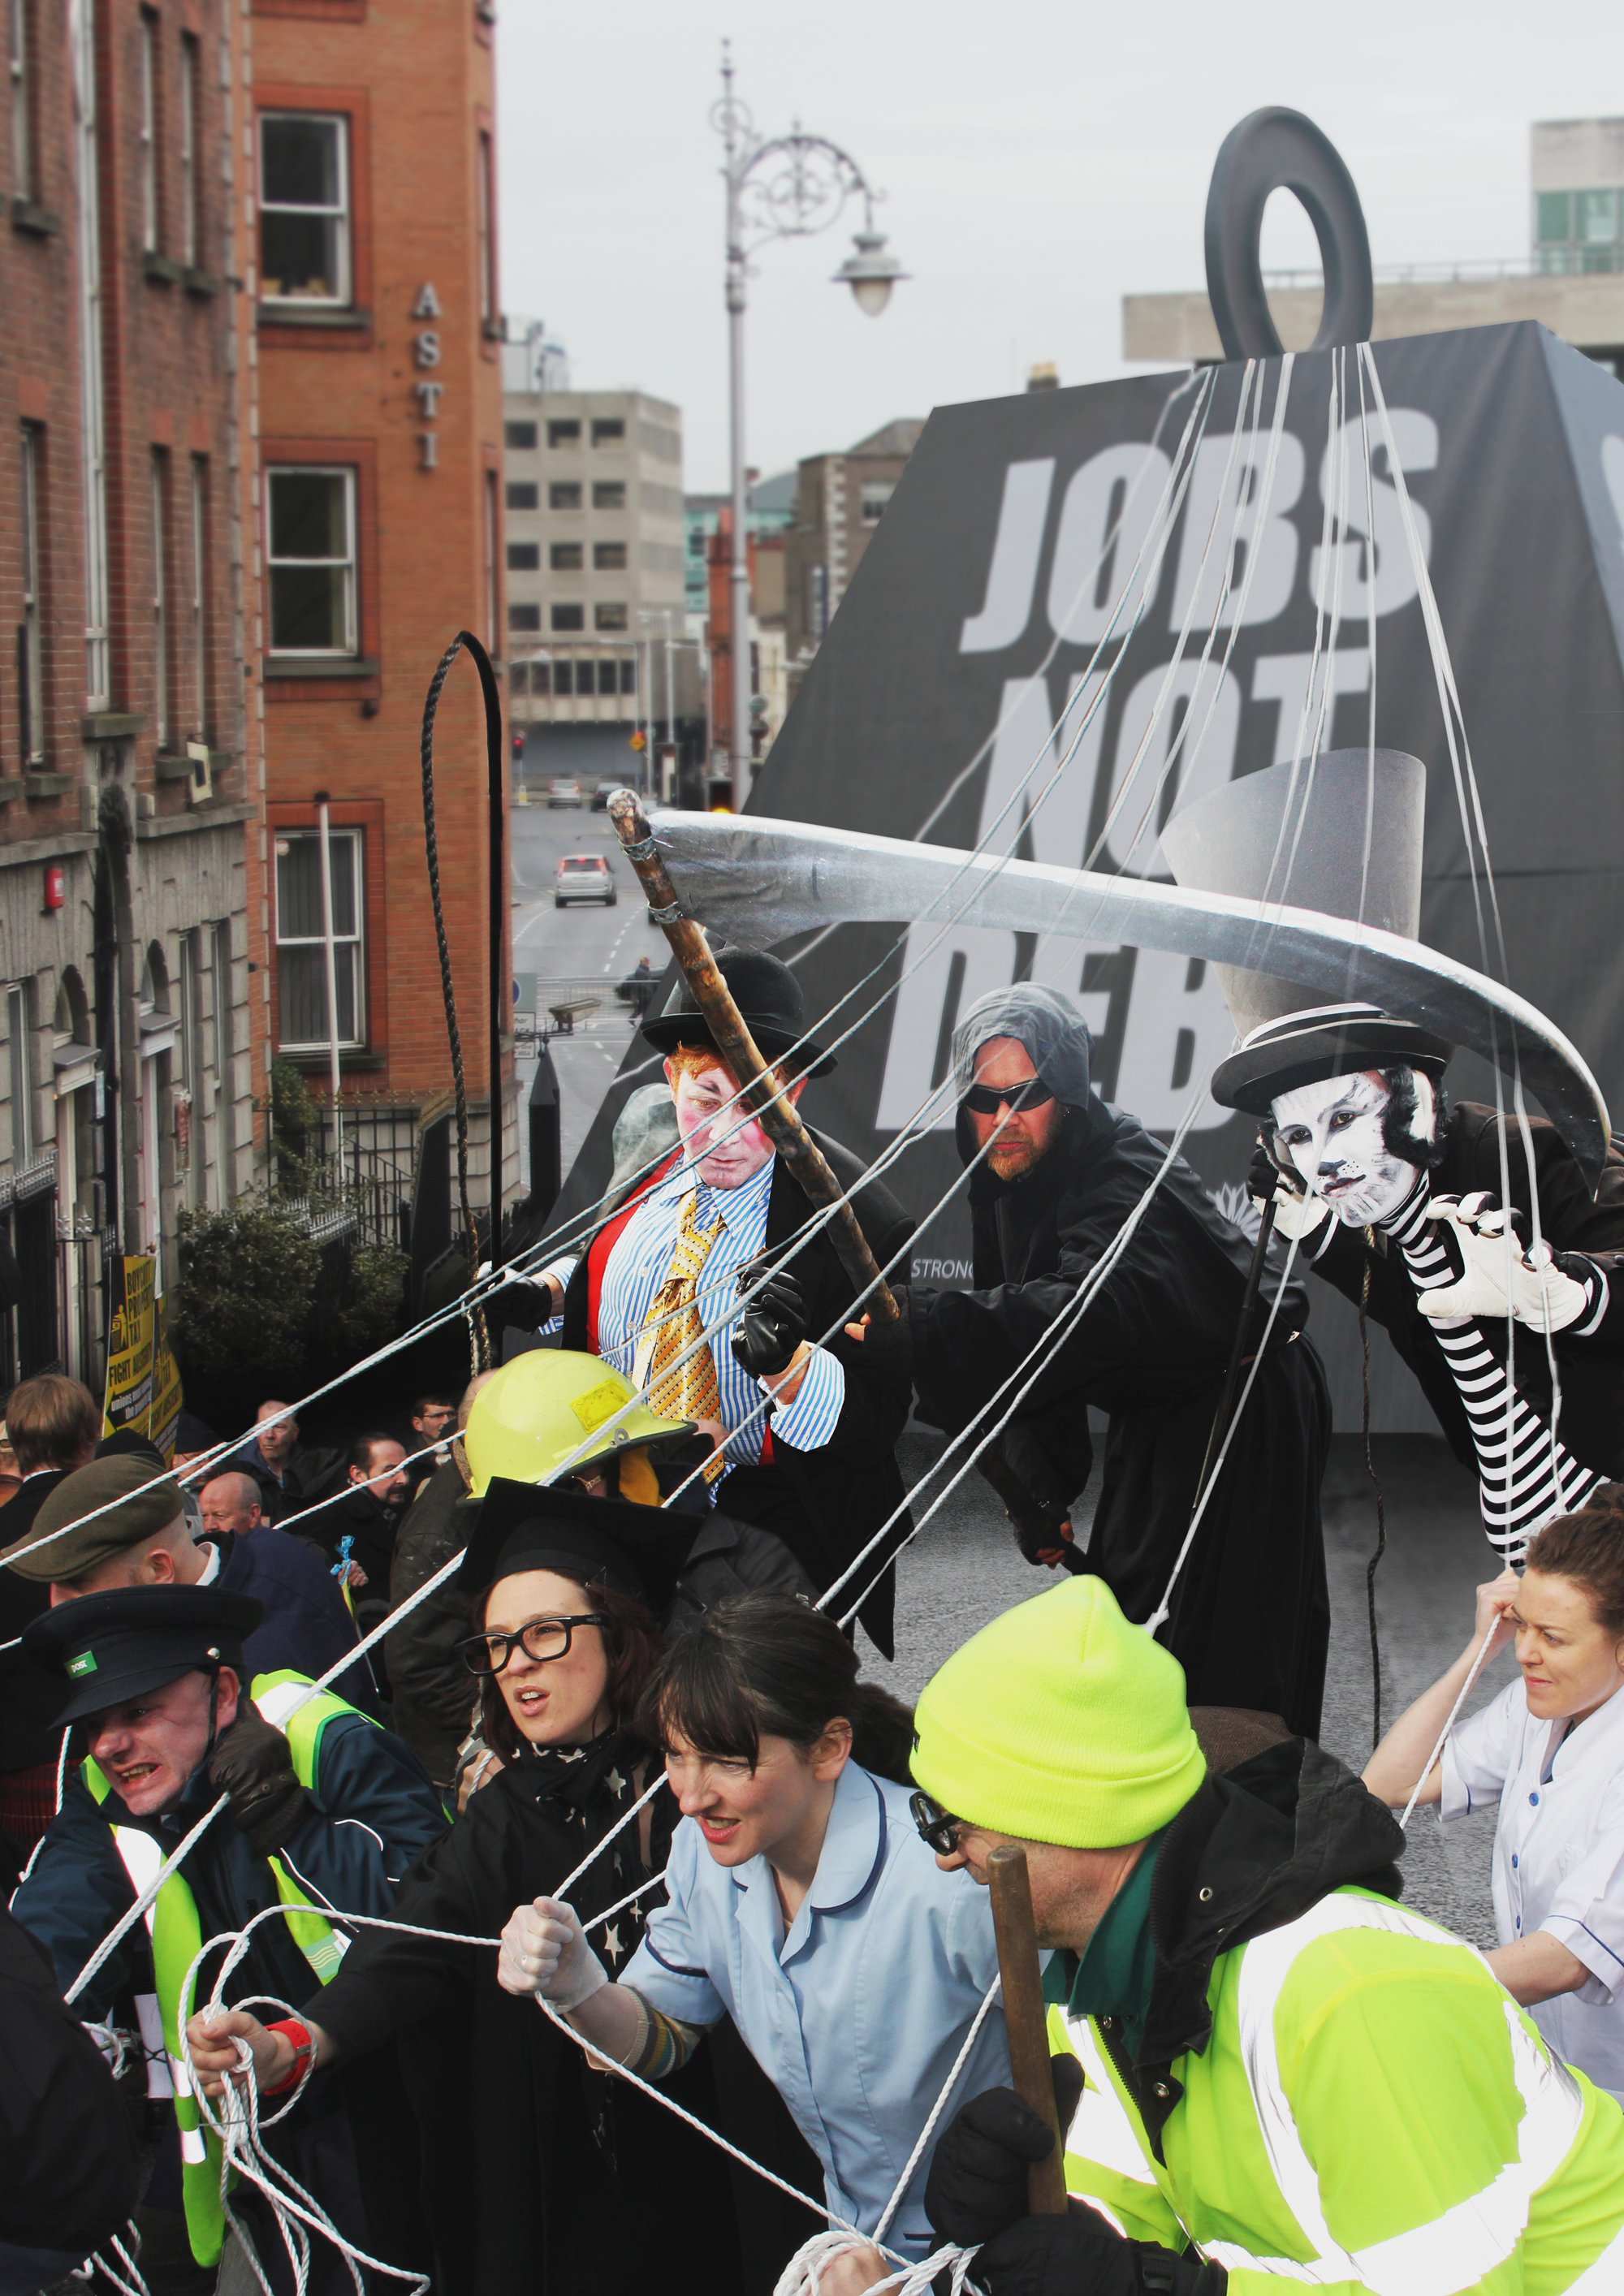 Cover image: JOBS NOT DEBT (2013)